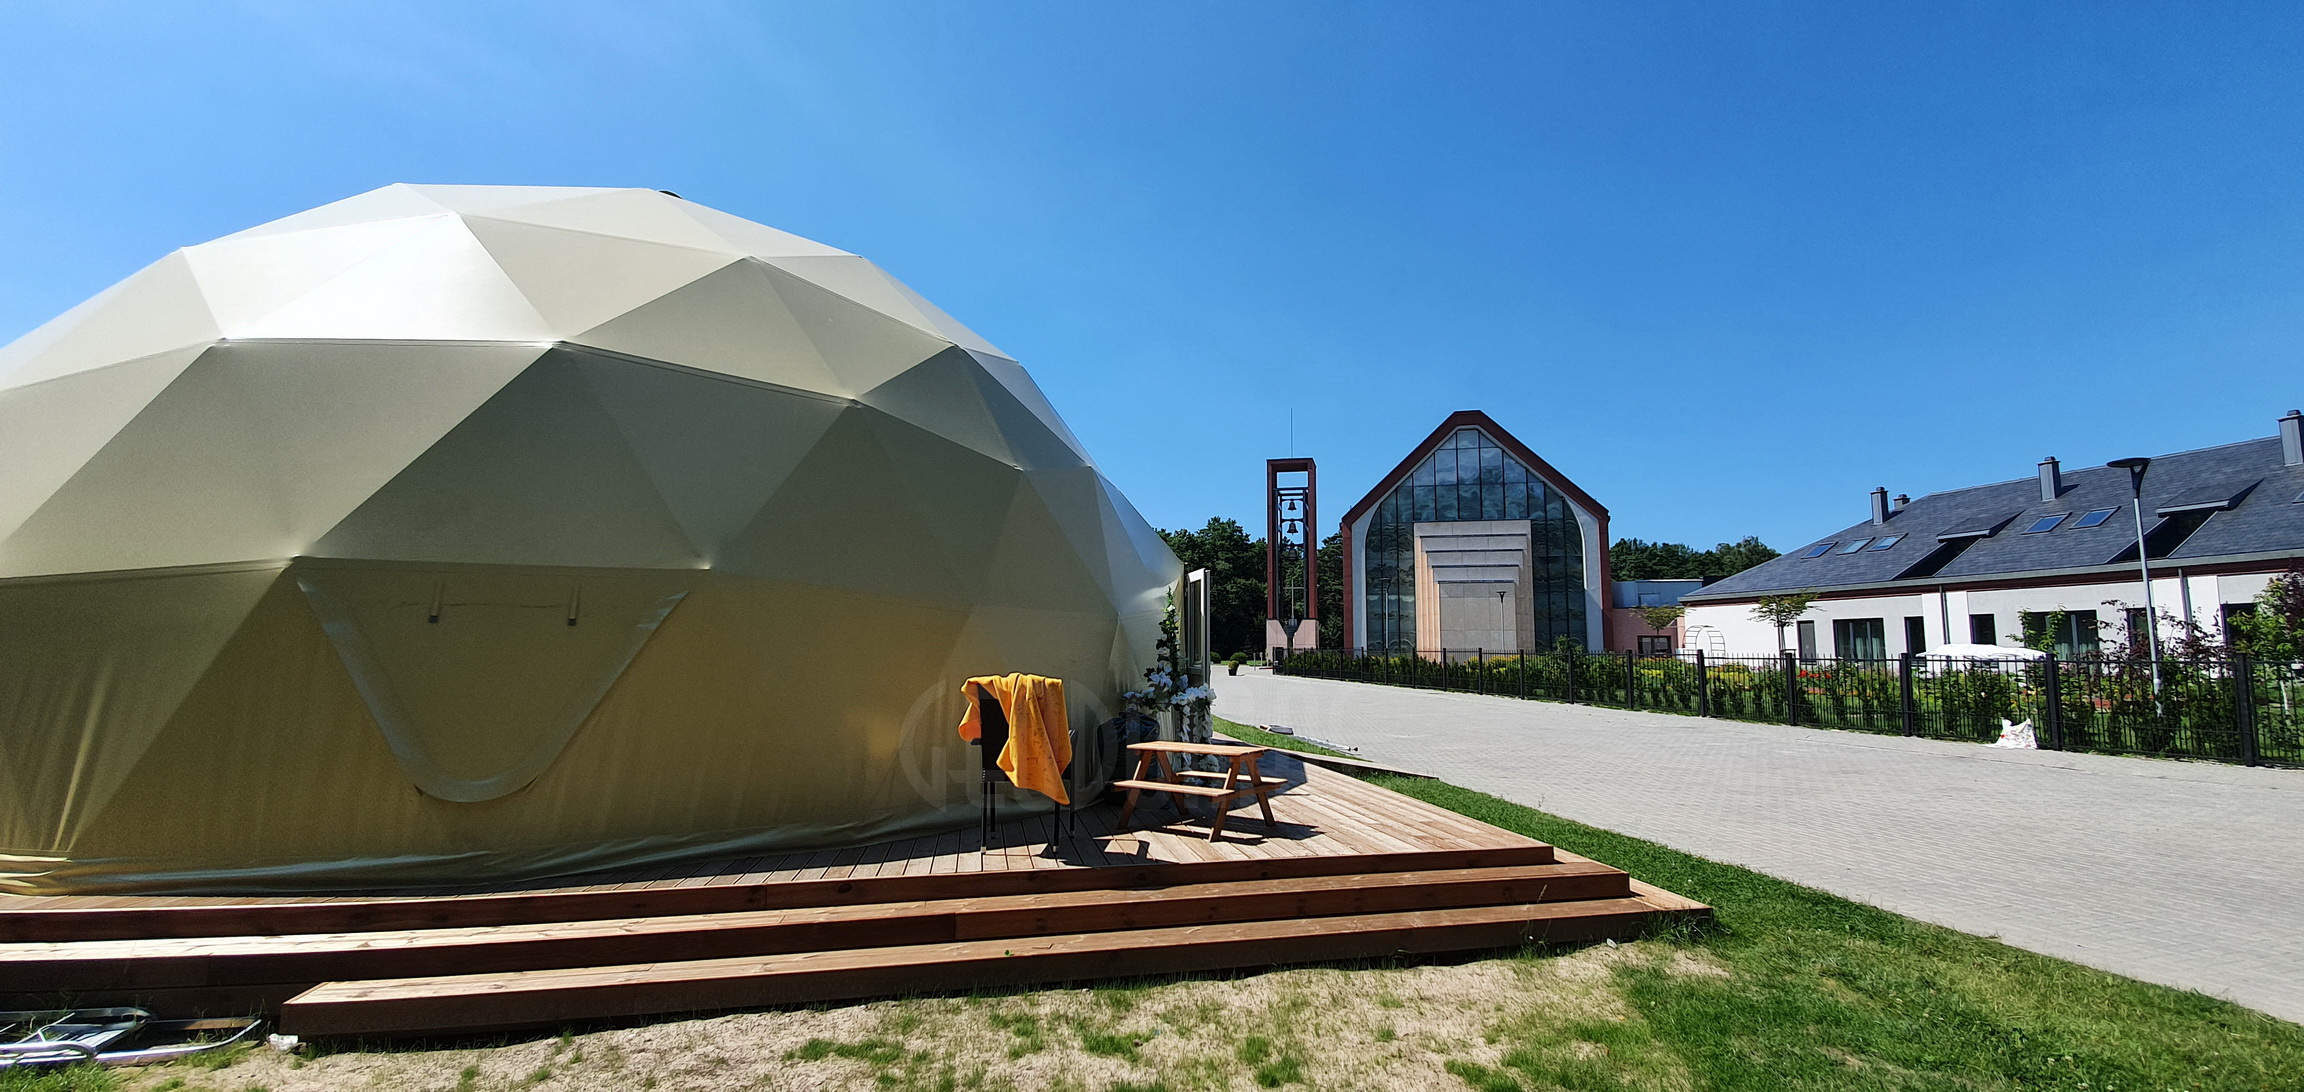 ⌀11m 95m2 Spiritual Dome @ St.Francis of Assisi monastery in Klaipeda